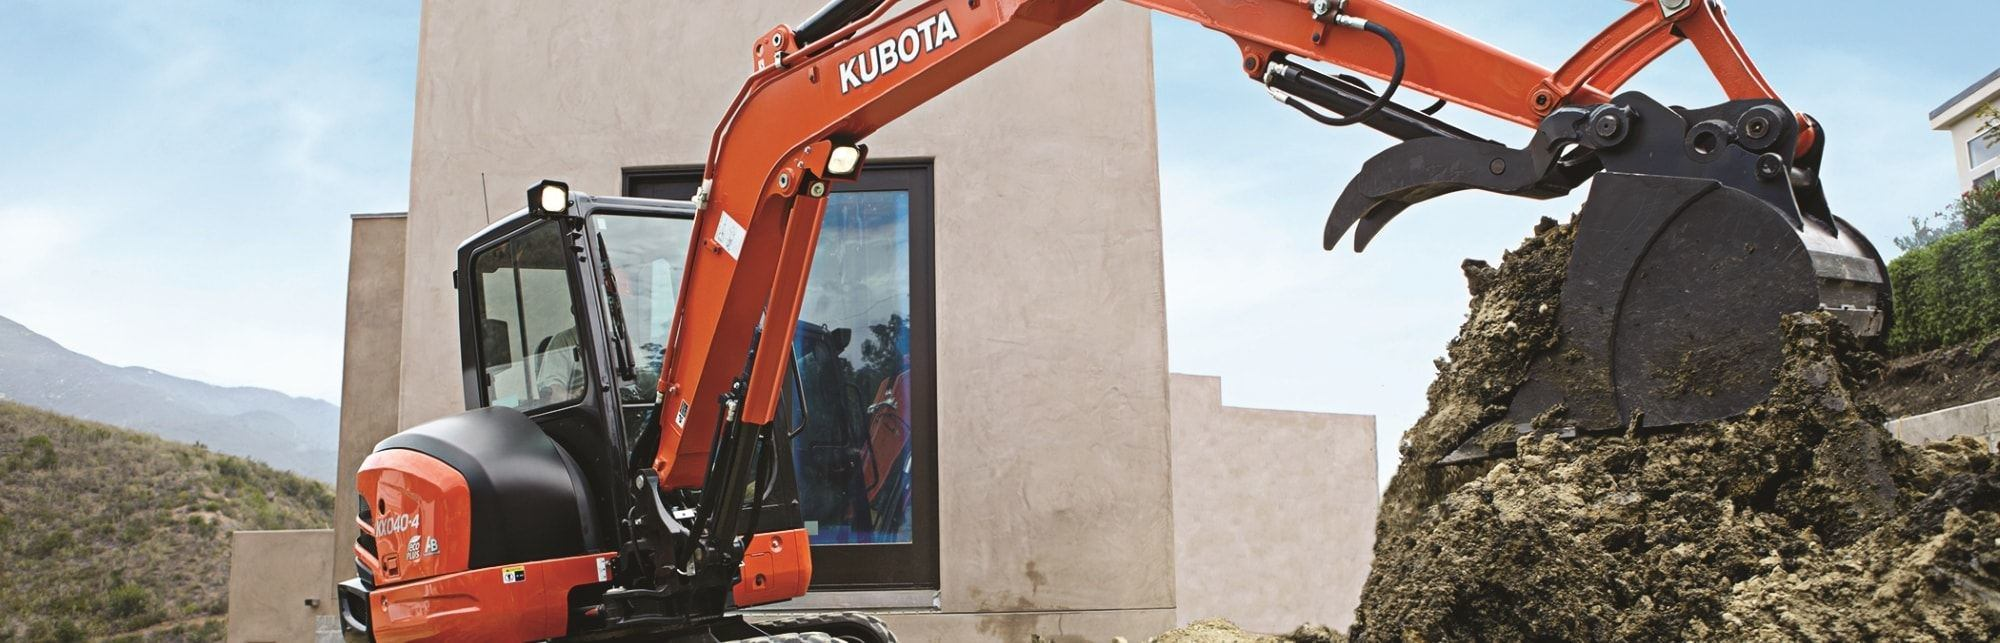 Great Plains Kubota - Rentals - Rent an excavator today!